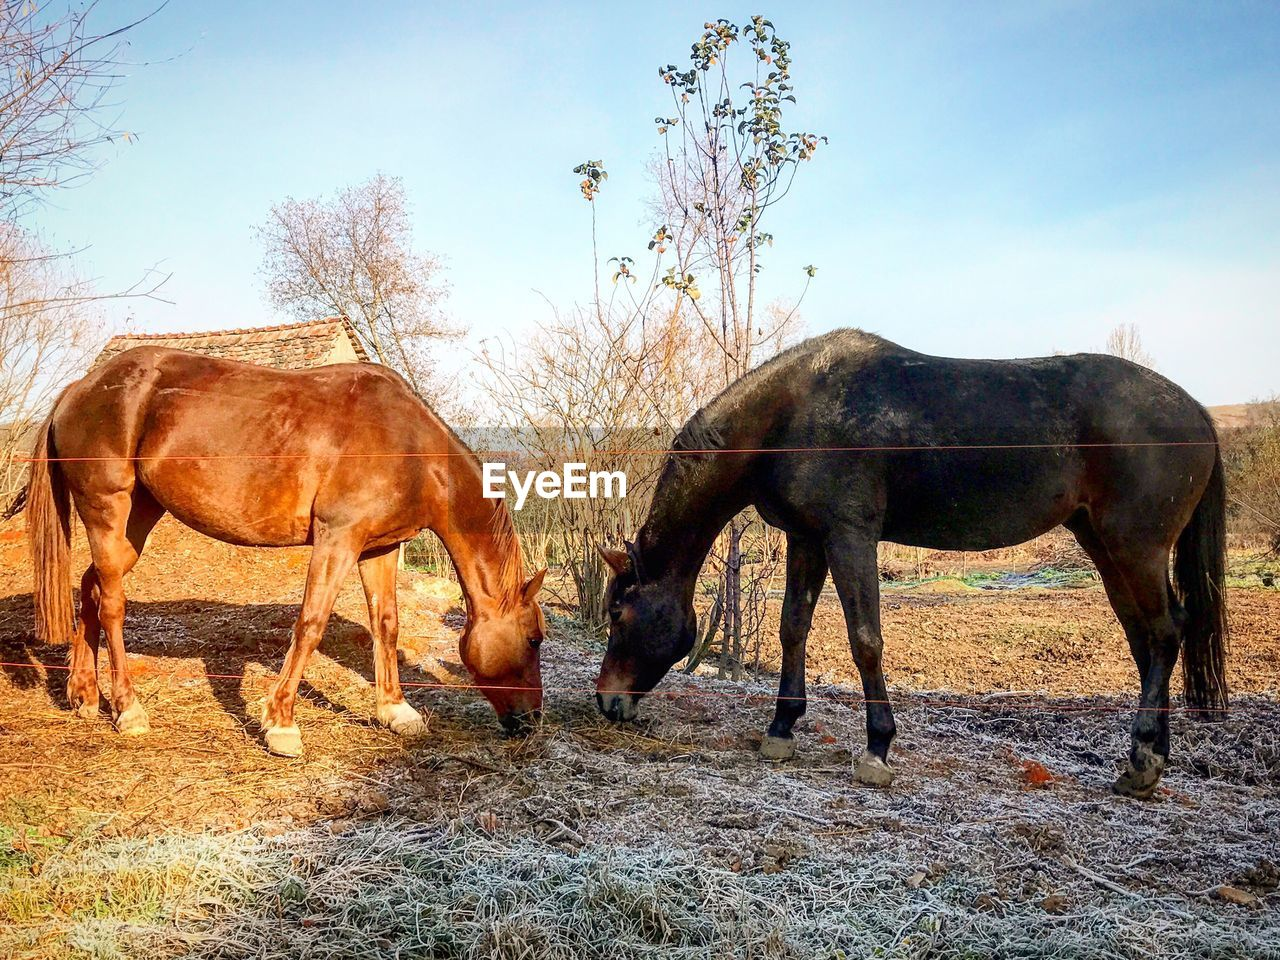 horse, animal themes, domestic animals, tree, mammal, livestock, field, day, nature, outdoors, sky, no people, clear sky, full length, beauty in nature